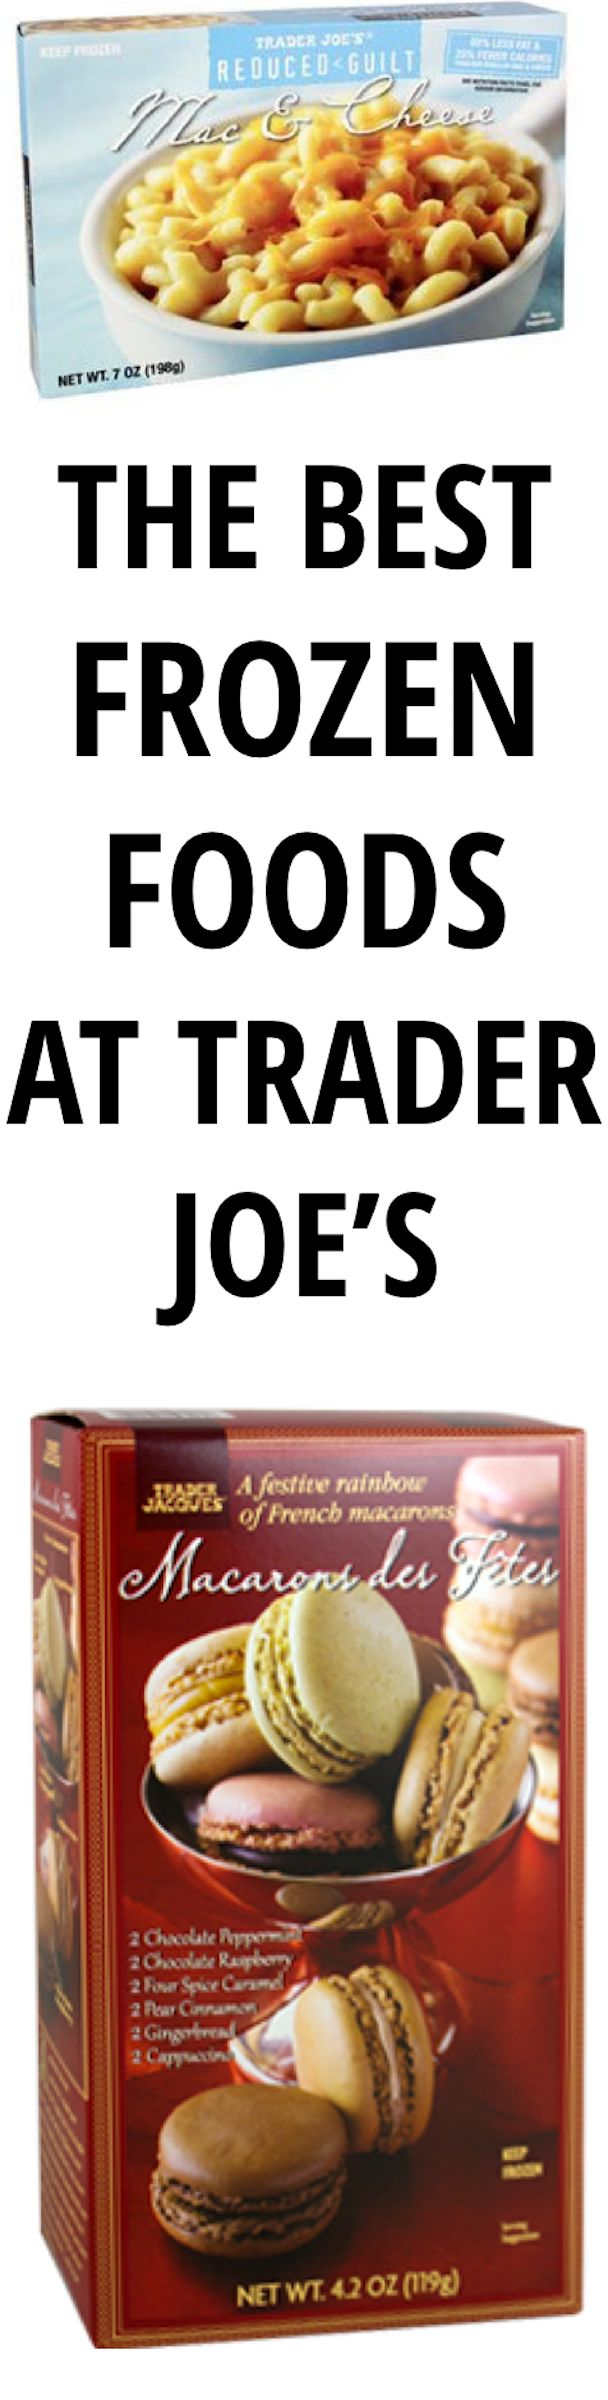 If you're feeling lazy about making dinner, are having guests over or you just feel like stocking up, rejoice: here's a list of the 45 best frozen foods at Trader Joe's.